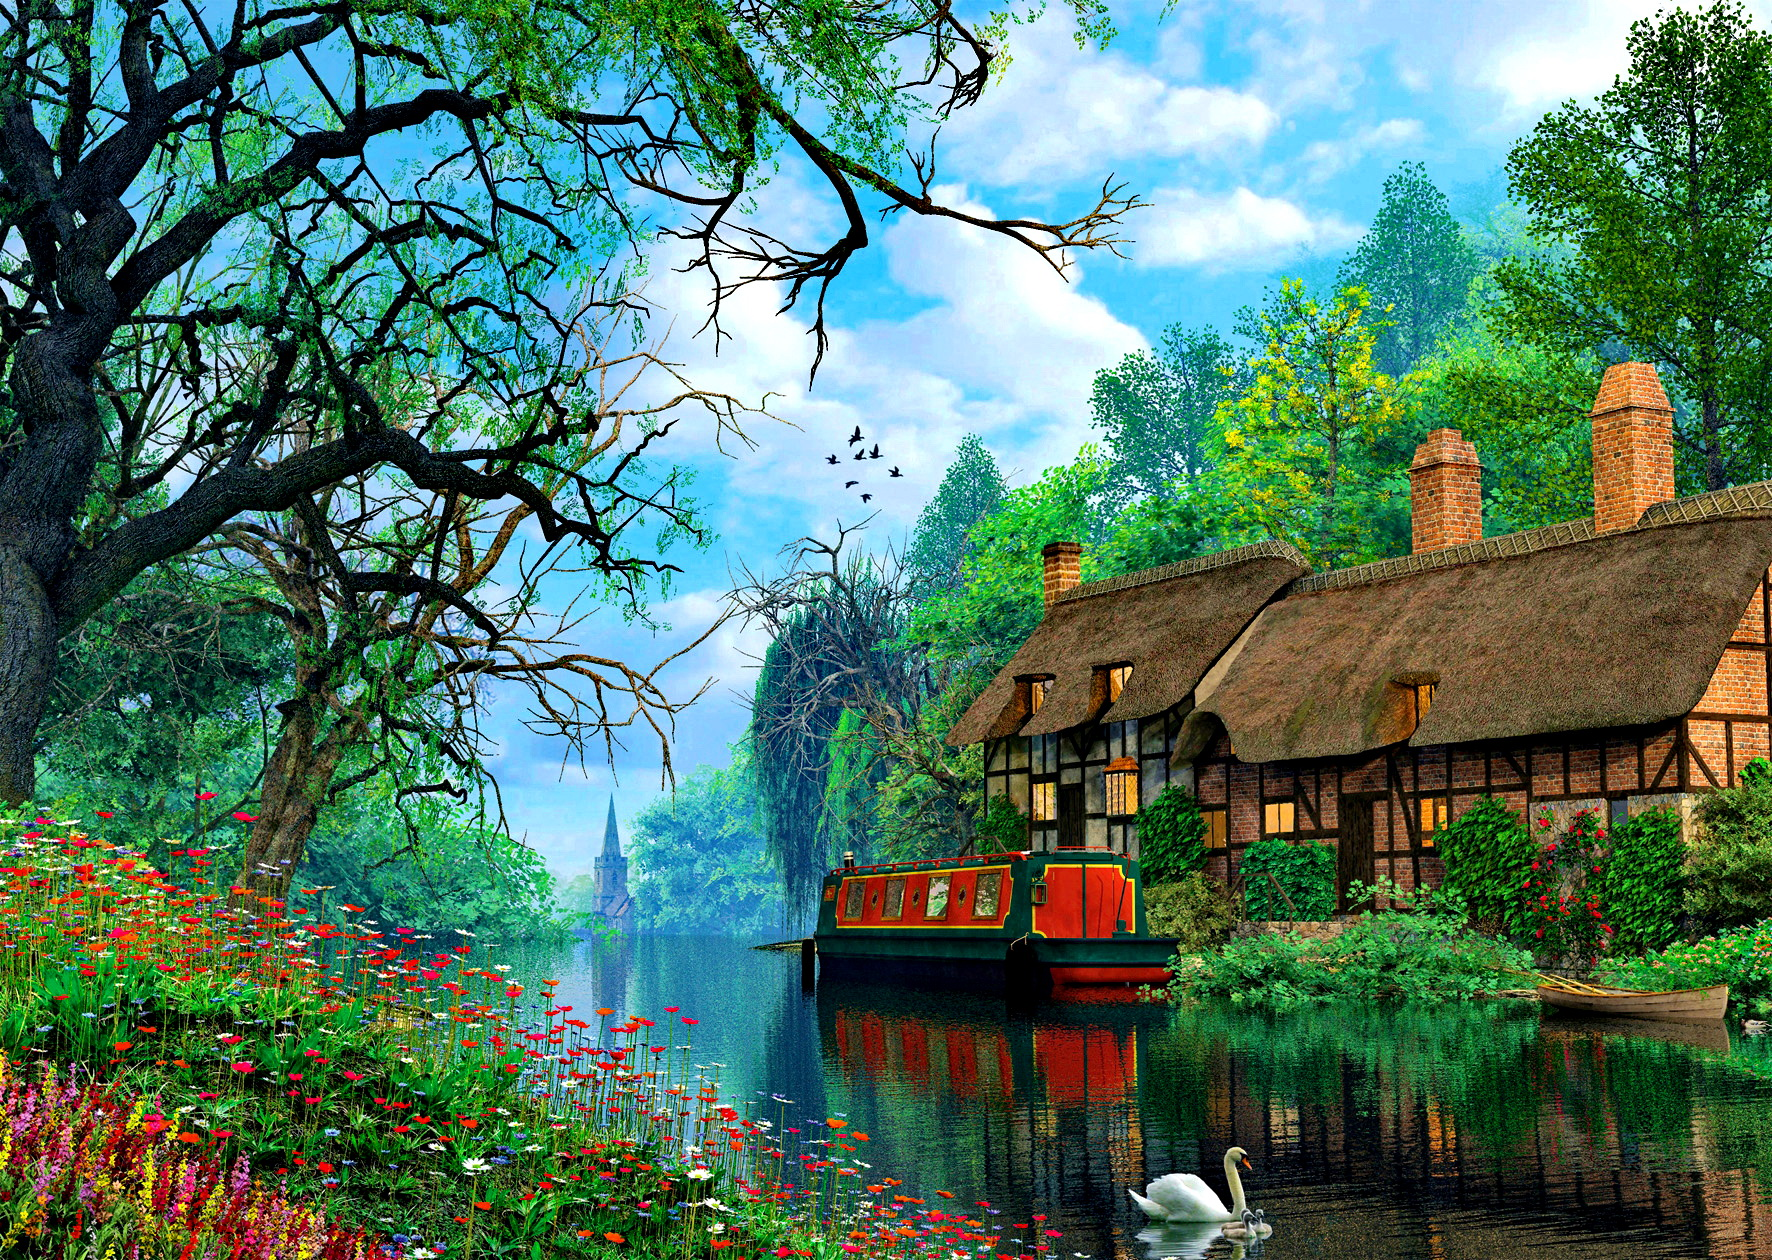 houses along a canal wallpaper and background image 1772x1260 id 805125 wallpaper abyss. Black Bedroom Furniture Sets. Home Design Ideas